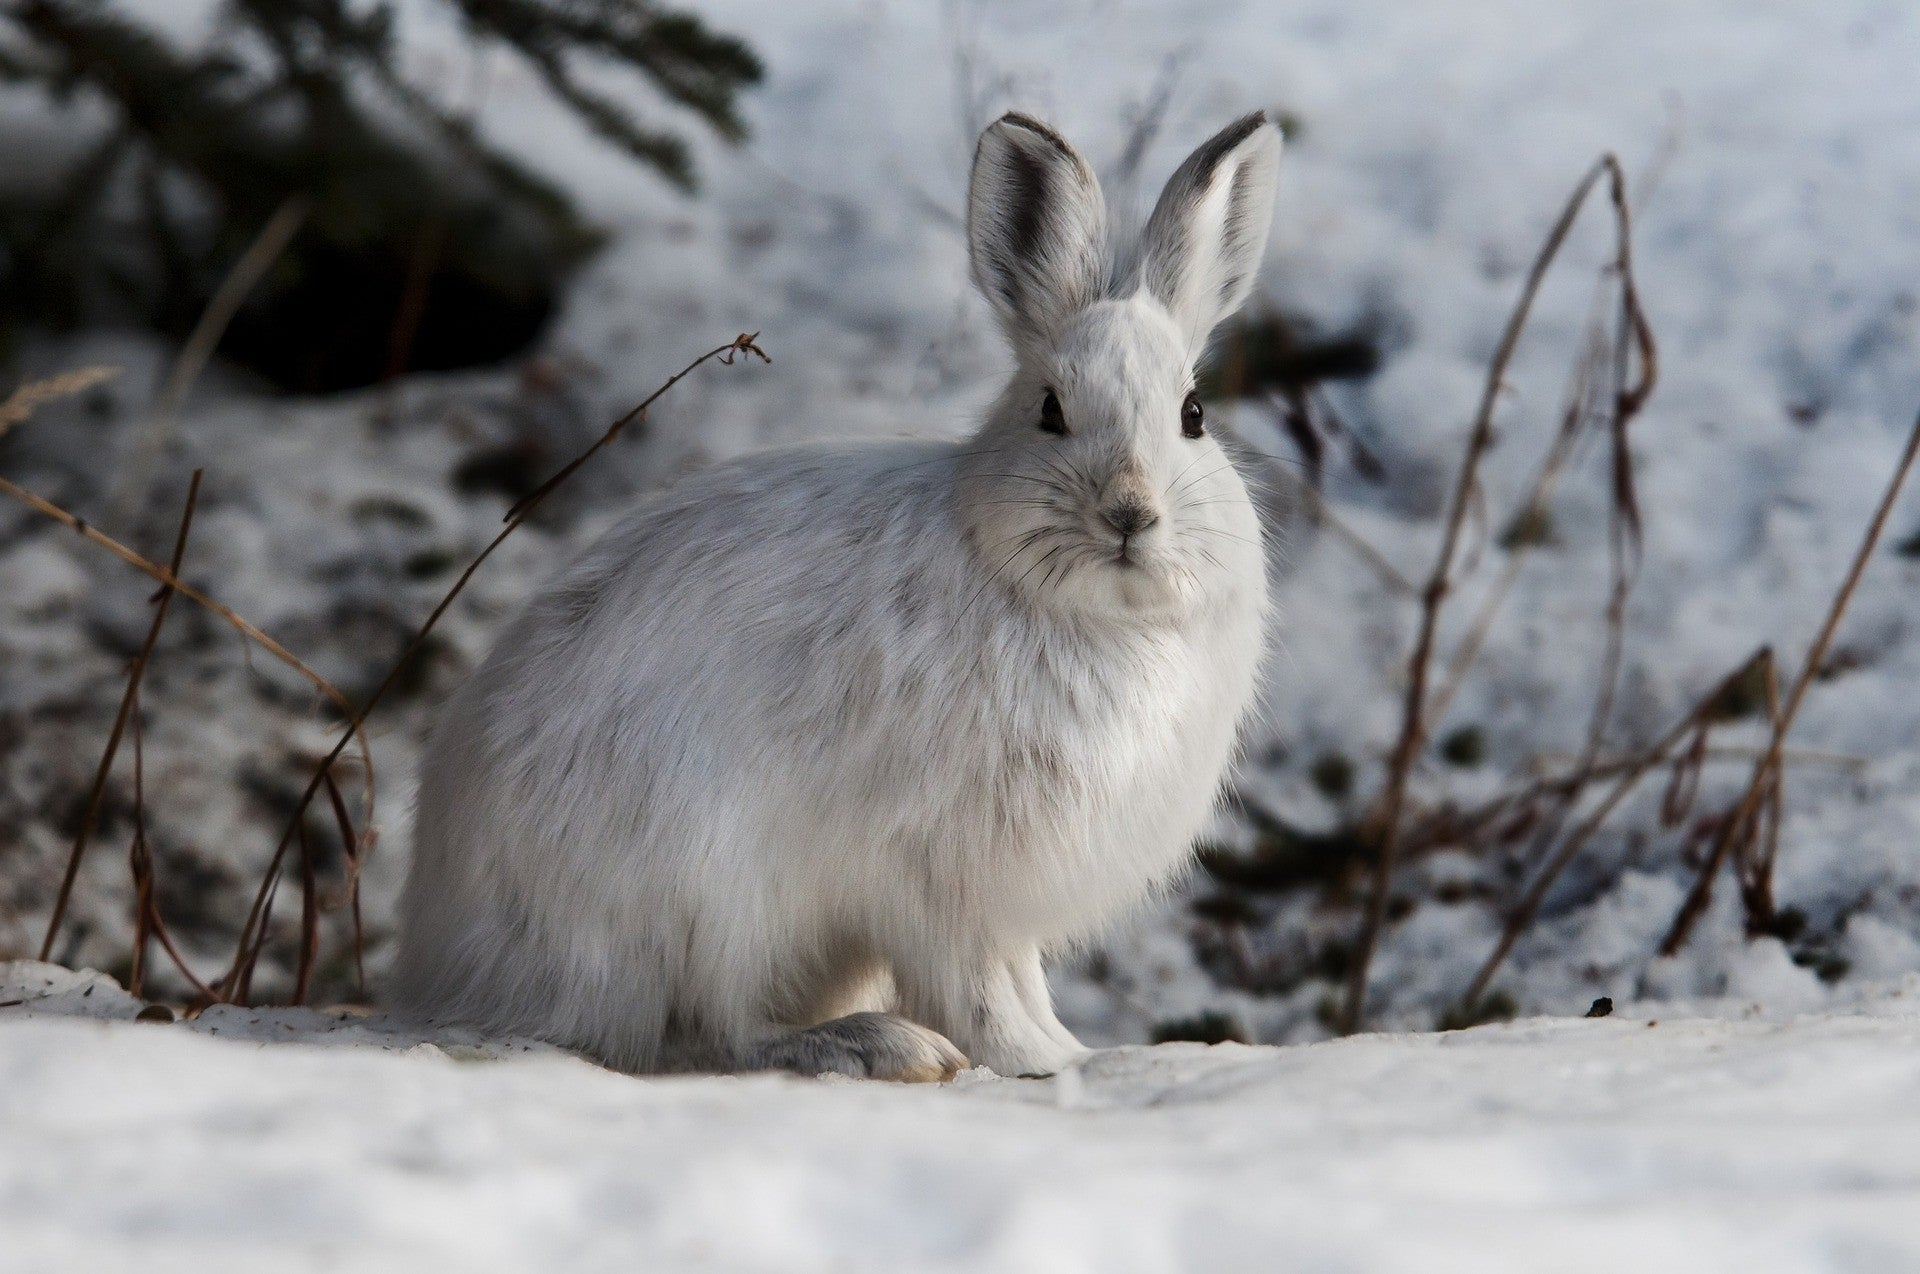 How to look after rabbits in winter